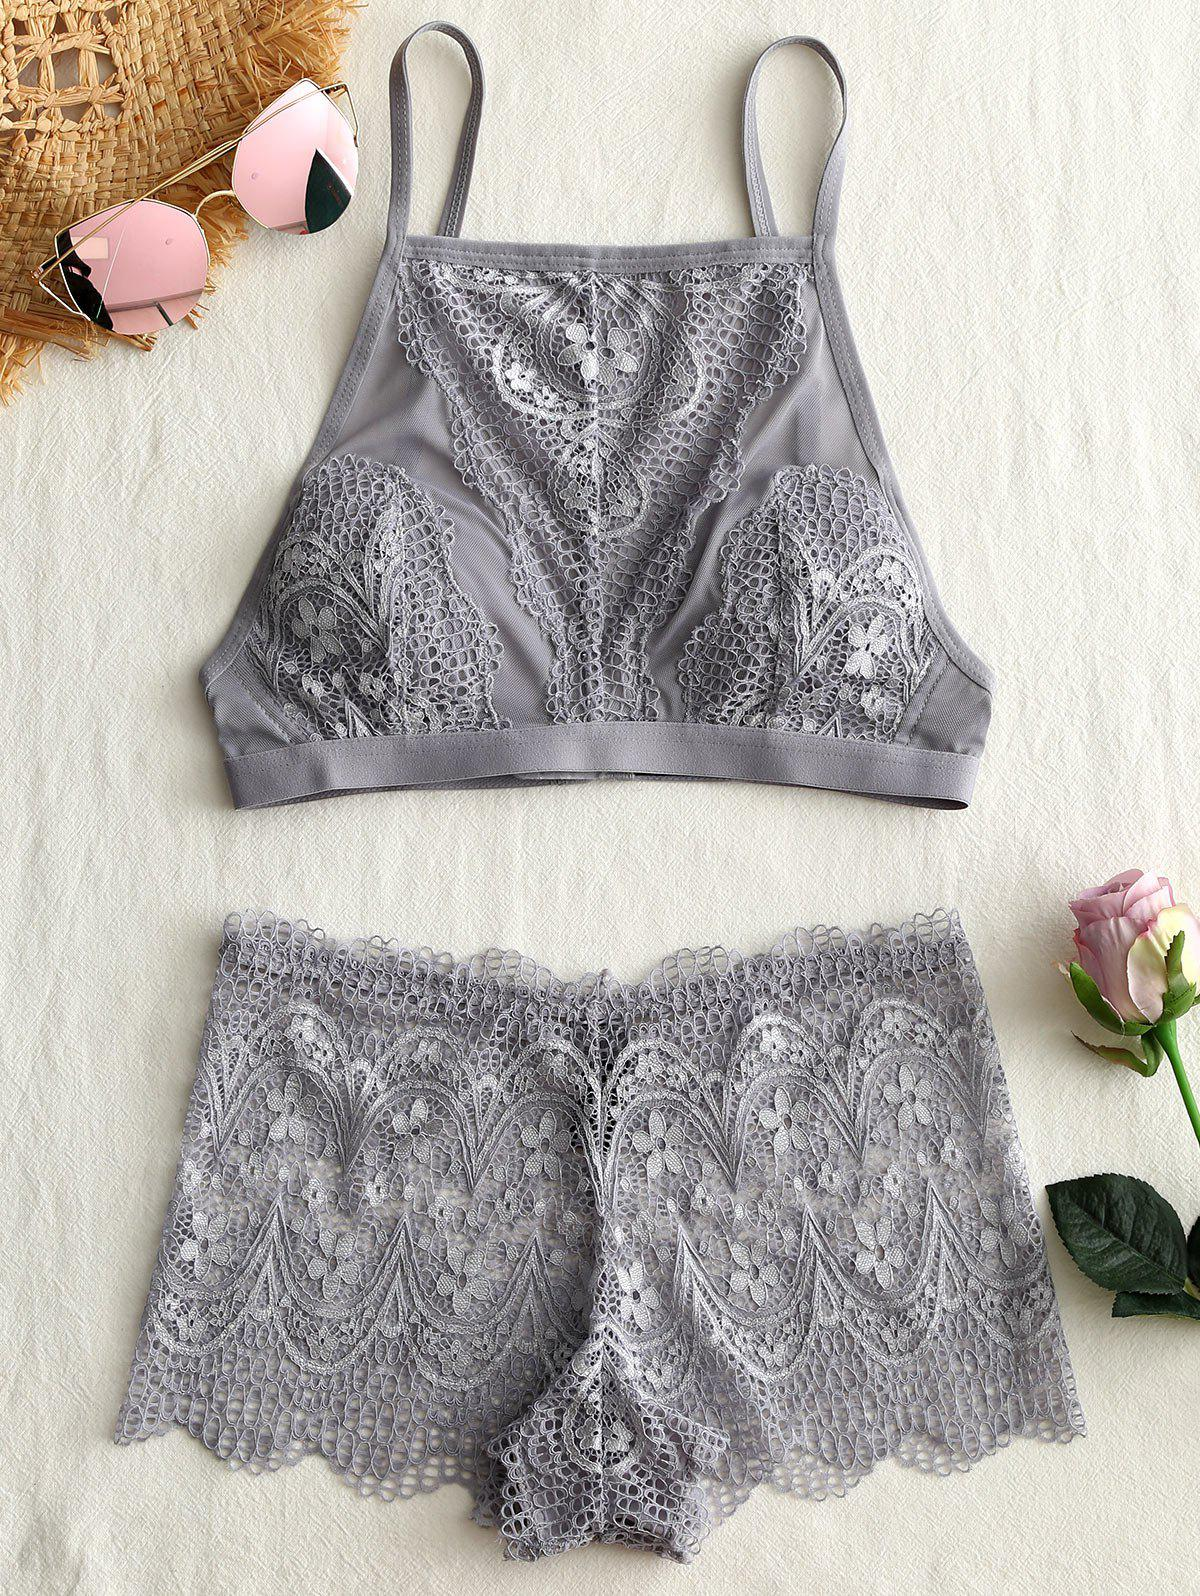 Lace See Thru Cami Bra Set - GRAY 75C